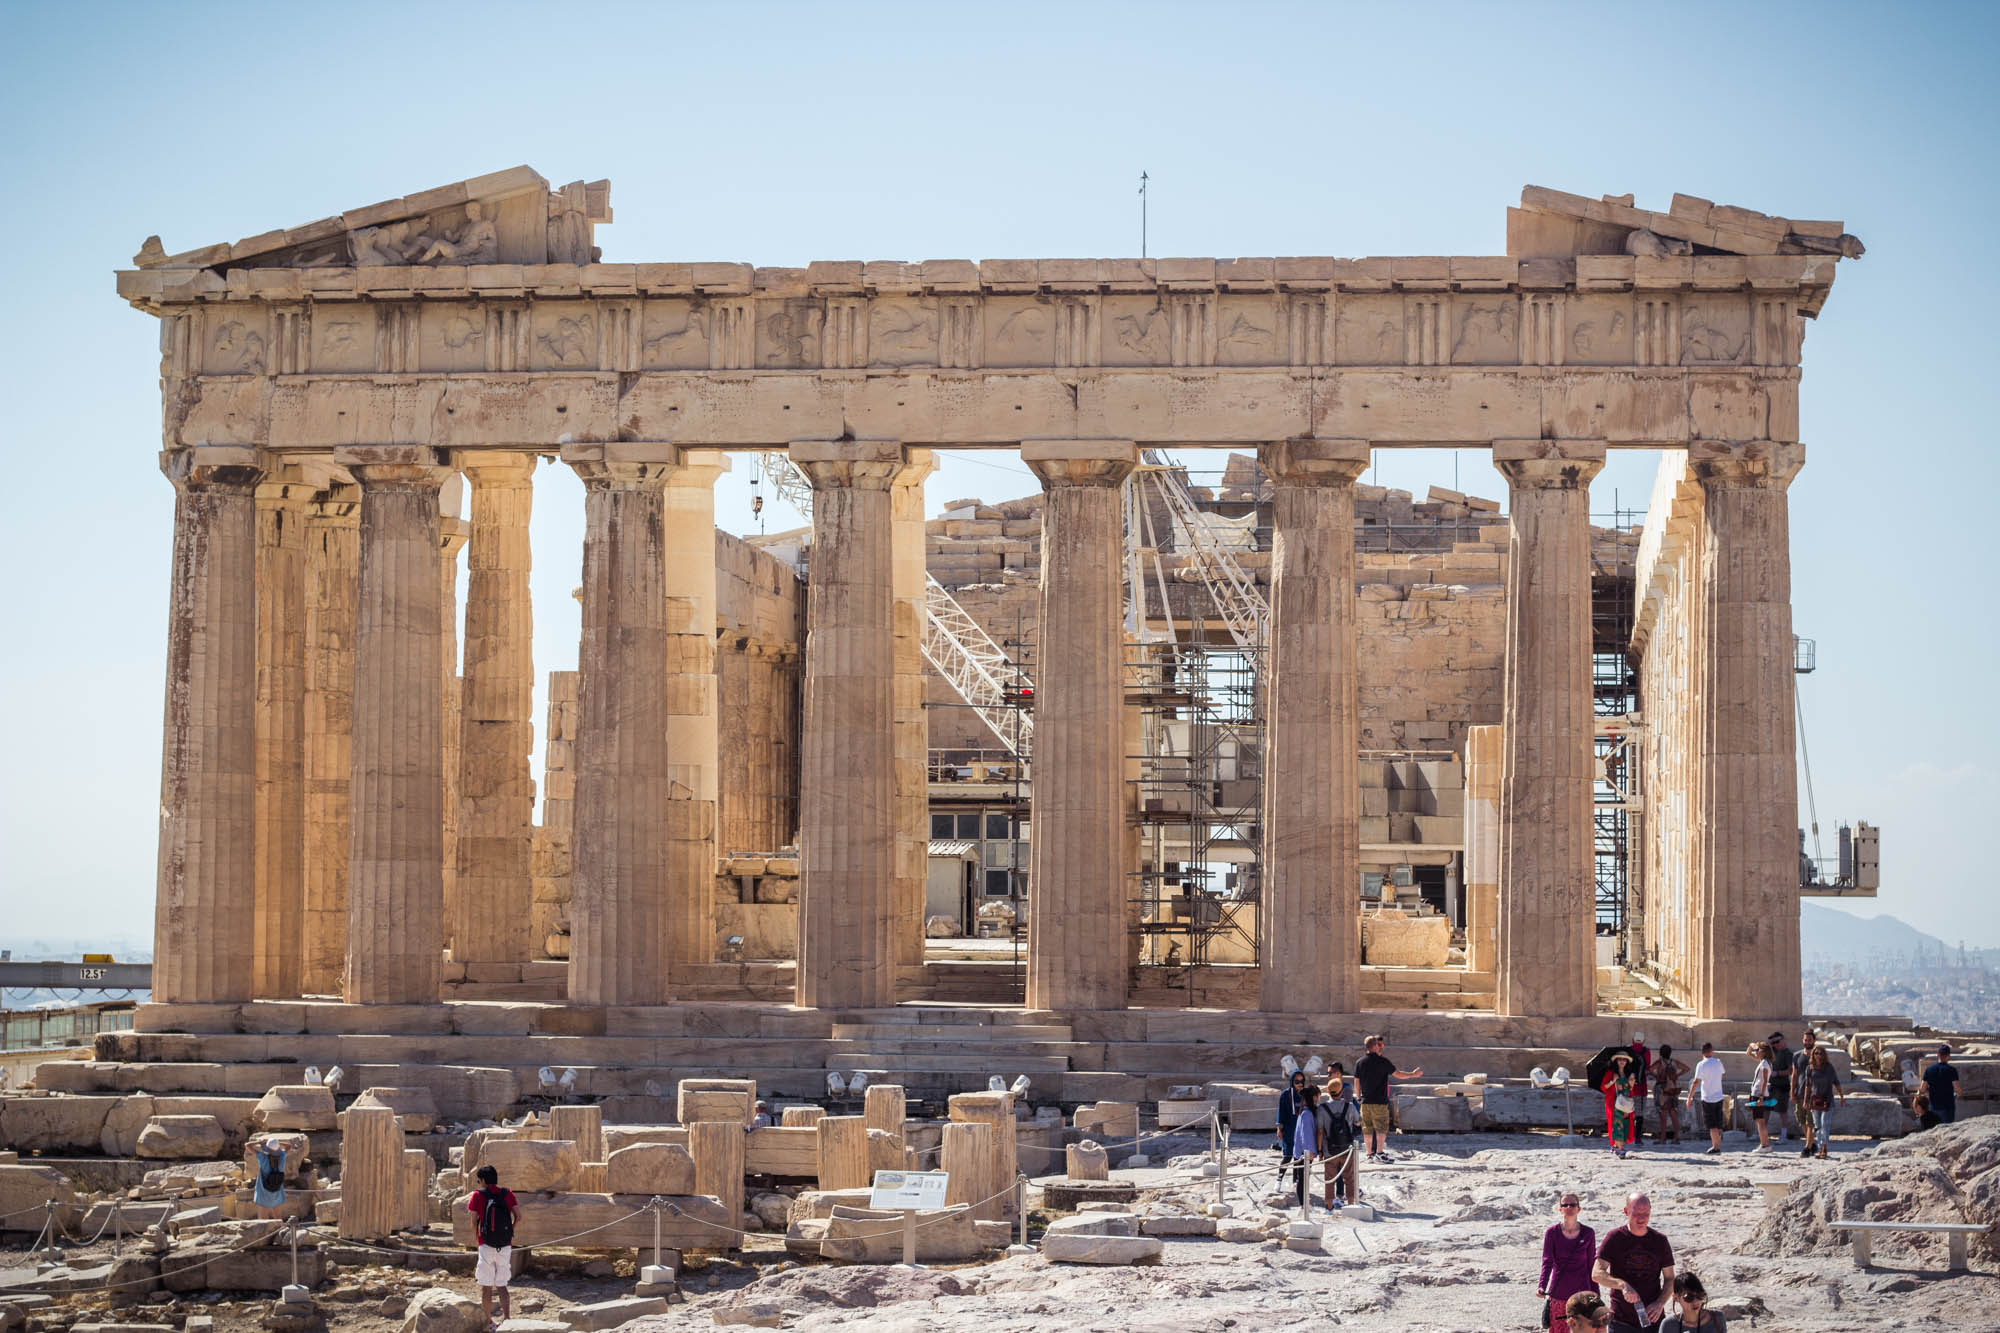 Parthenon in Acropolis in Athens, Greece